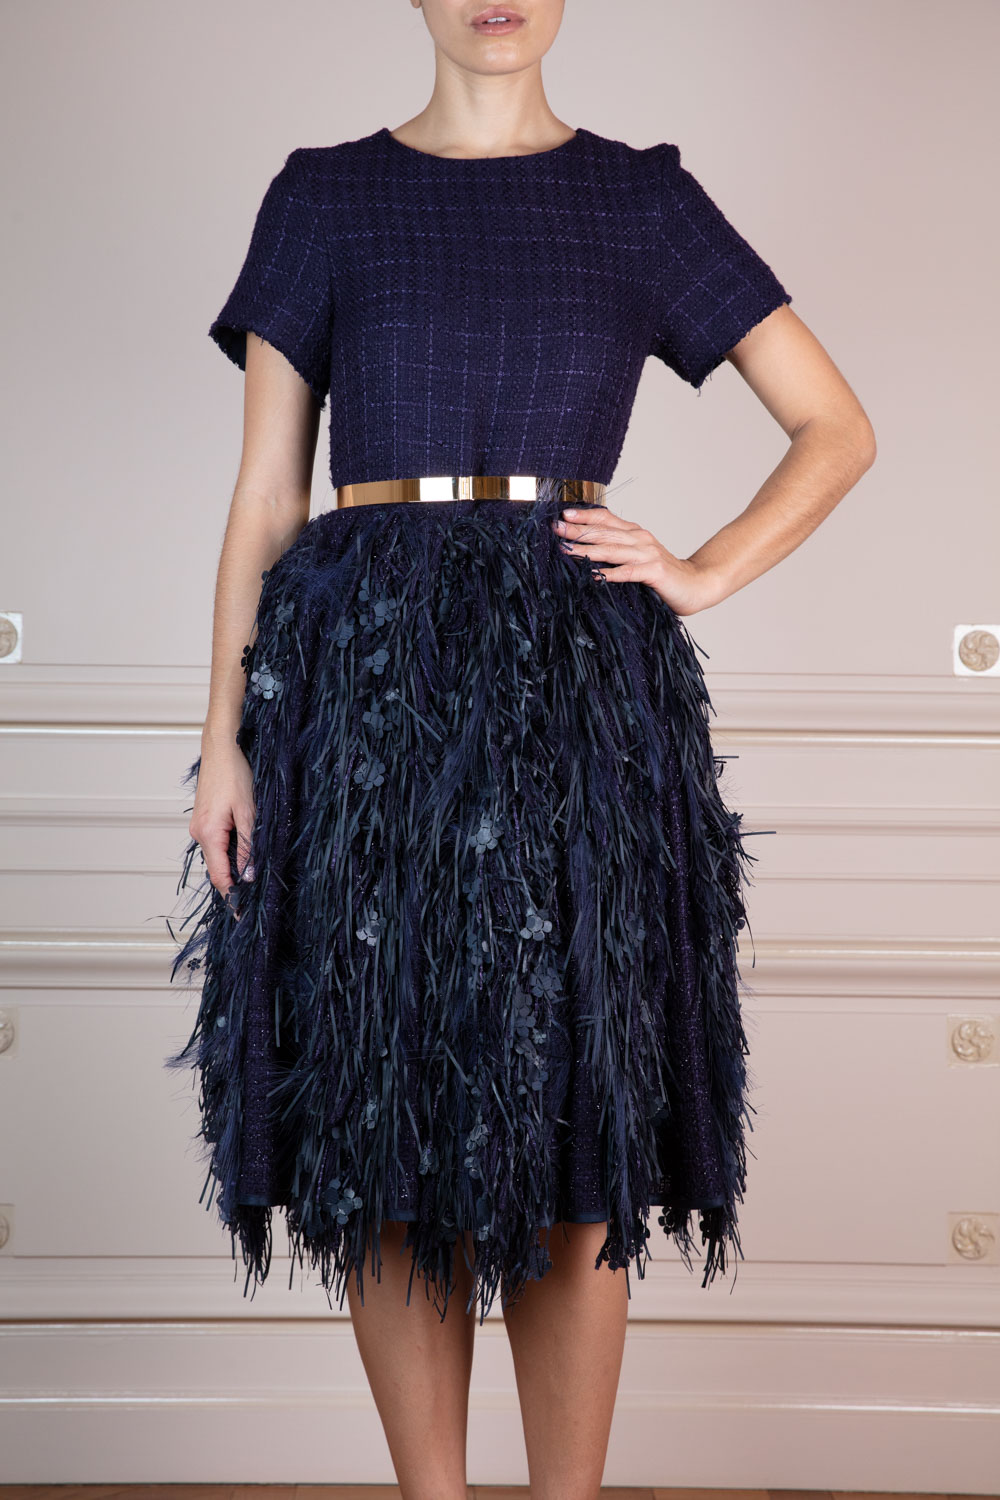 Deep blue bouclé tweed frock with flower and fringe embellishments